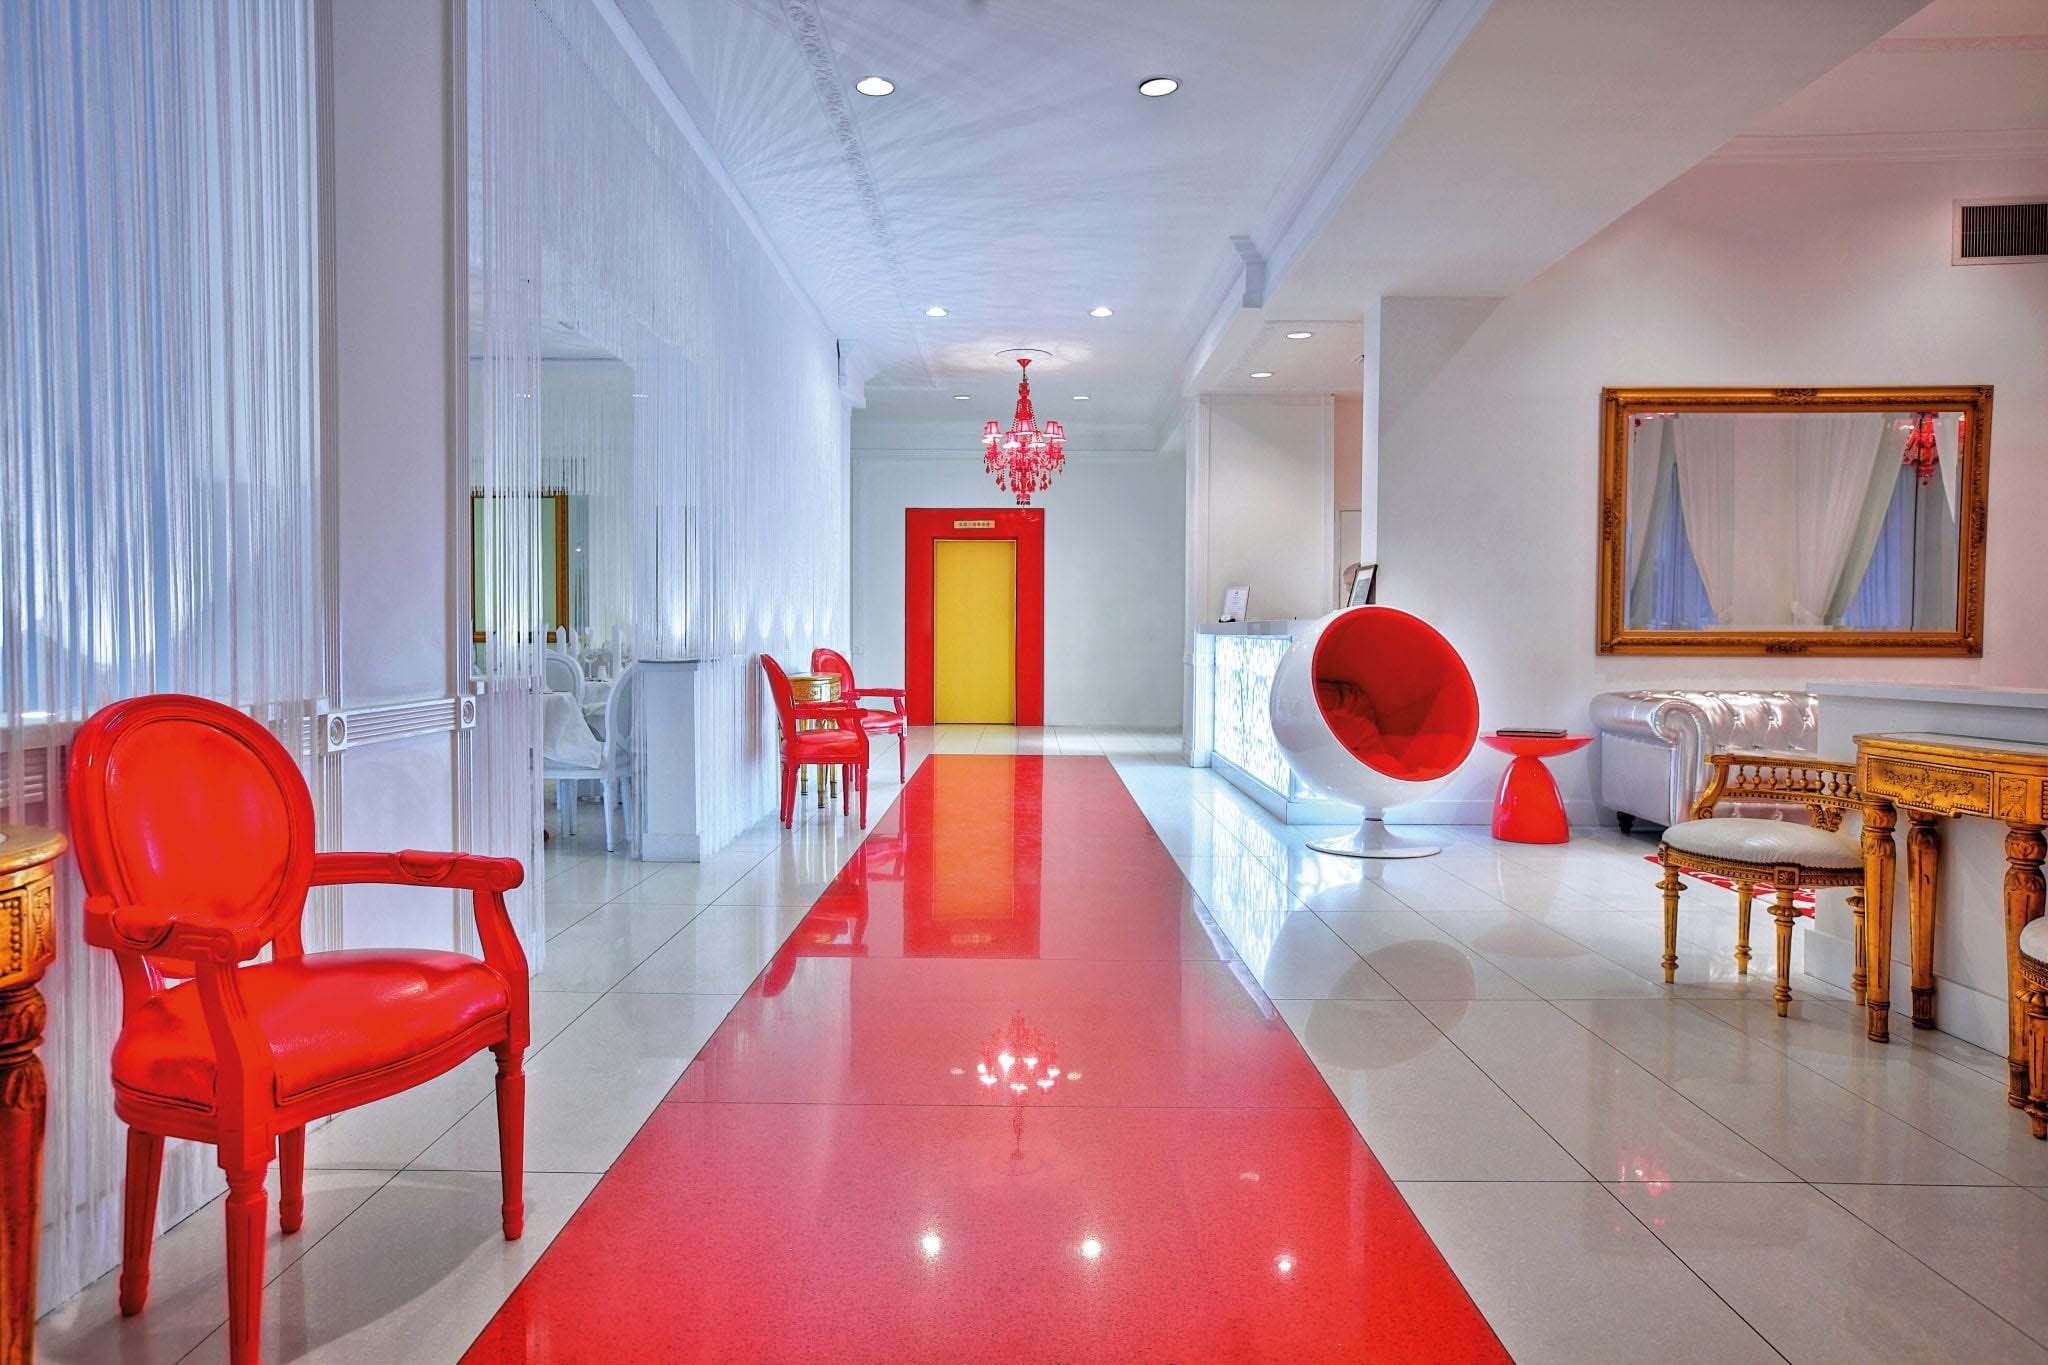 Lobby 2 in Red South Beach Hotel, Miami Beach USA Slide